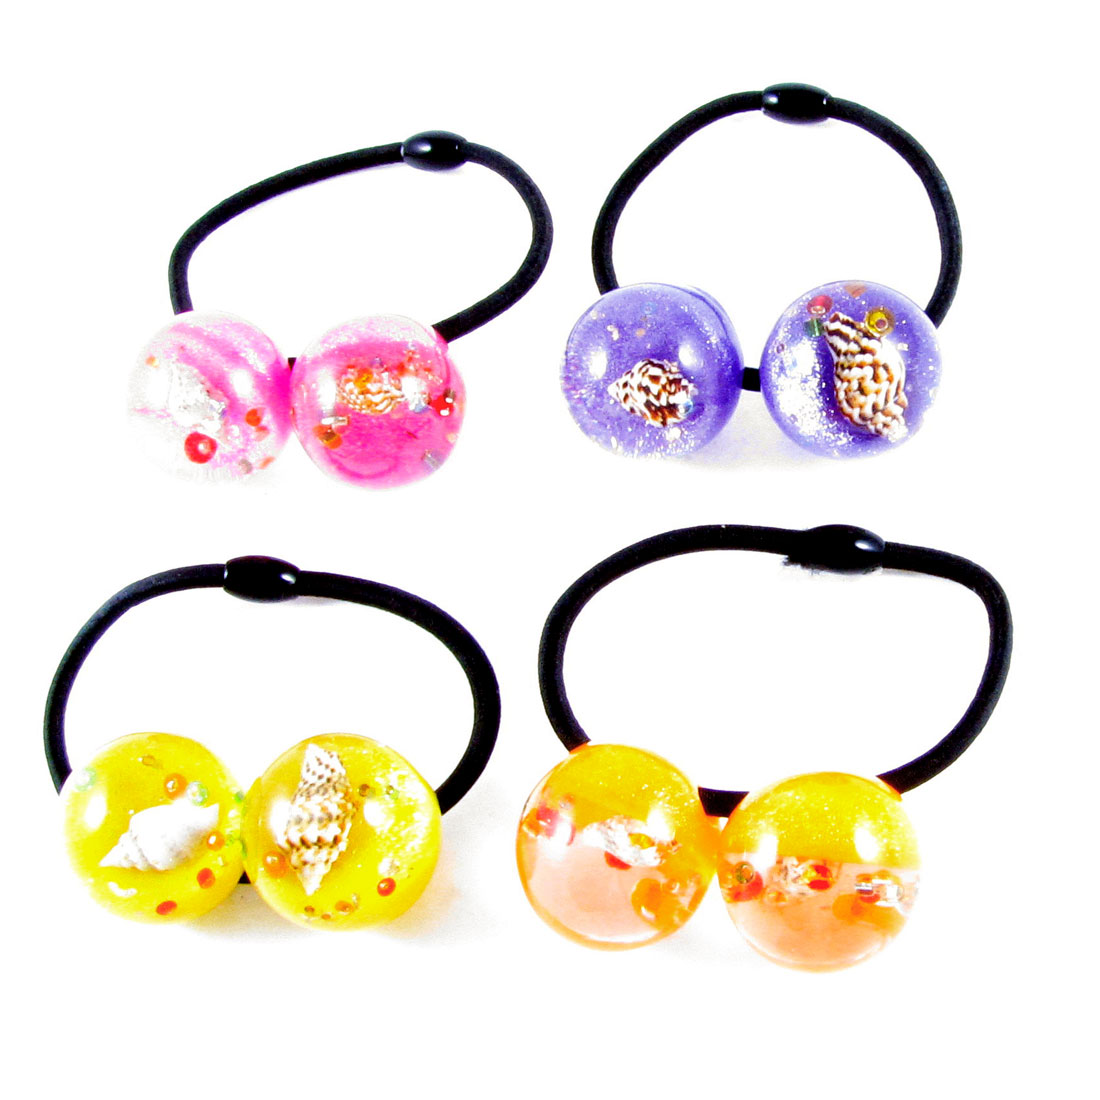 4pcs Ladies Shell Inlaid Assorted Color Beads Decor Elastic Hair Band Tie